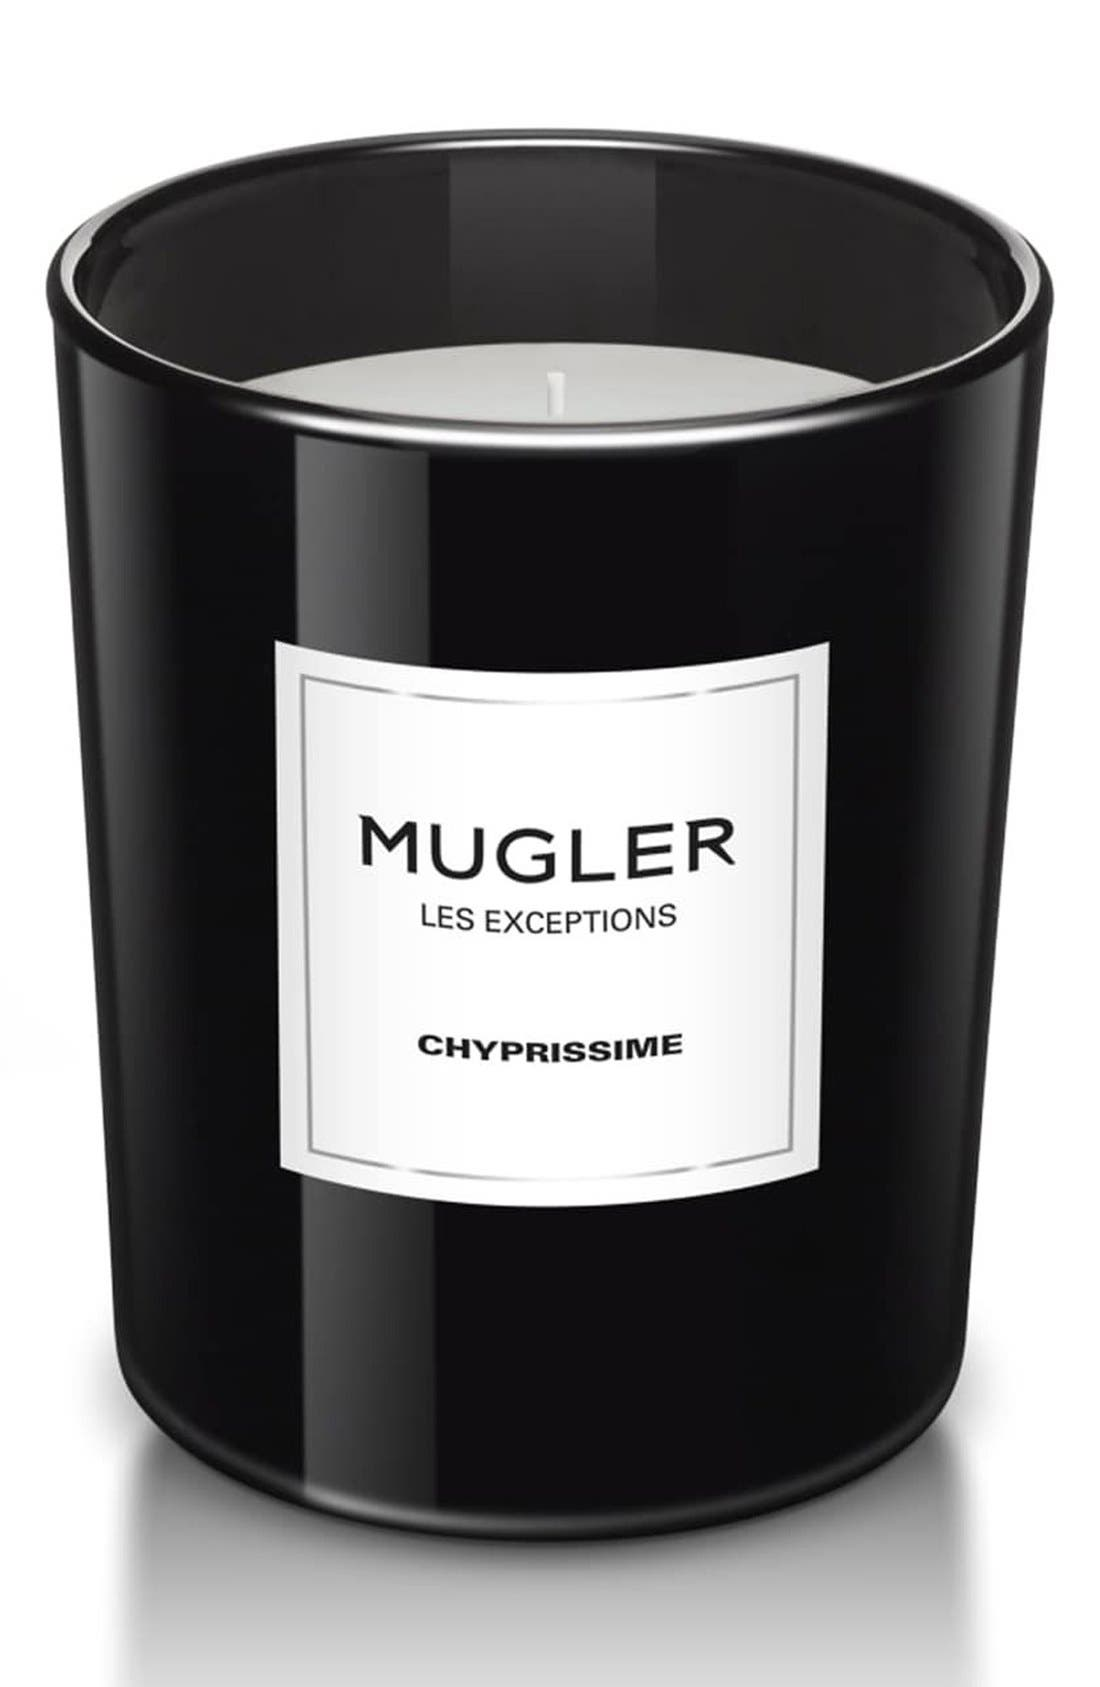 Mugler 'Les Exceptions - Chyprissime' Candle,                             Main thumbnail 1, color,                             No Color